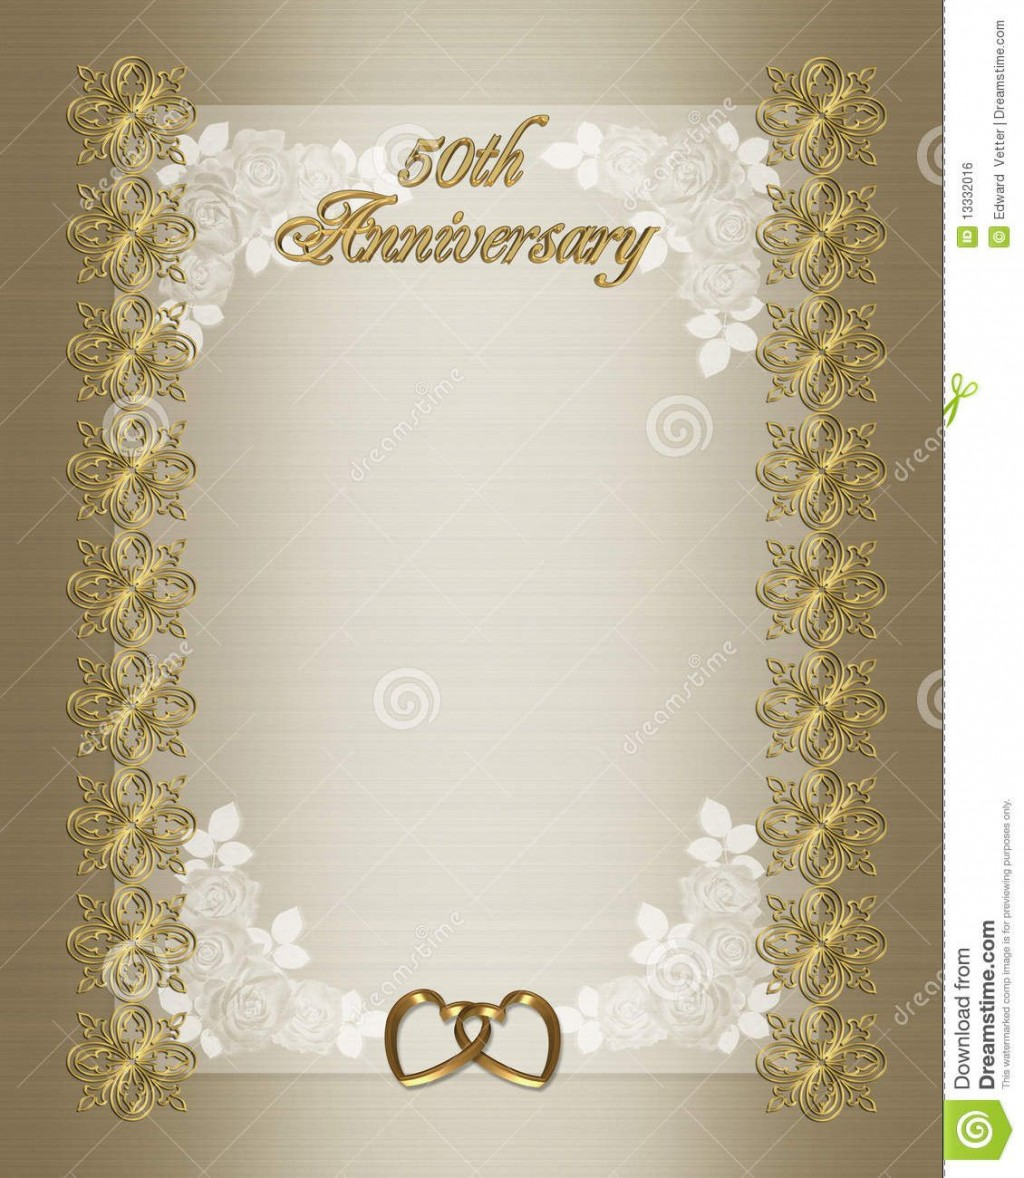 004 Remarkable 50th Wedding Anniversary Party Invitation Template Image  Templates FreeLarge